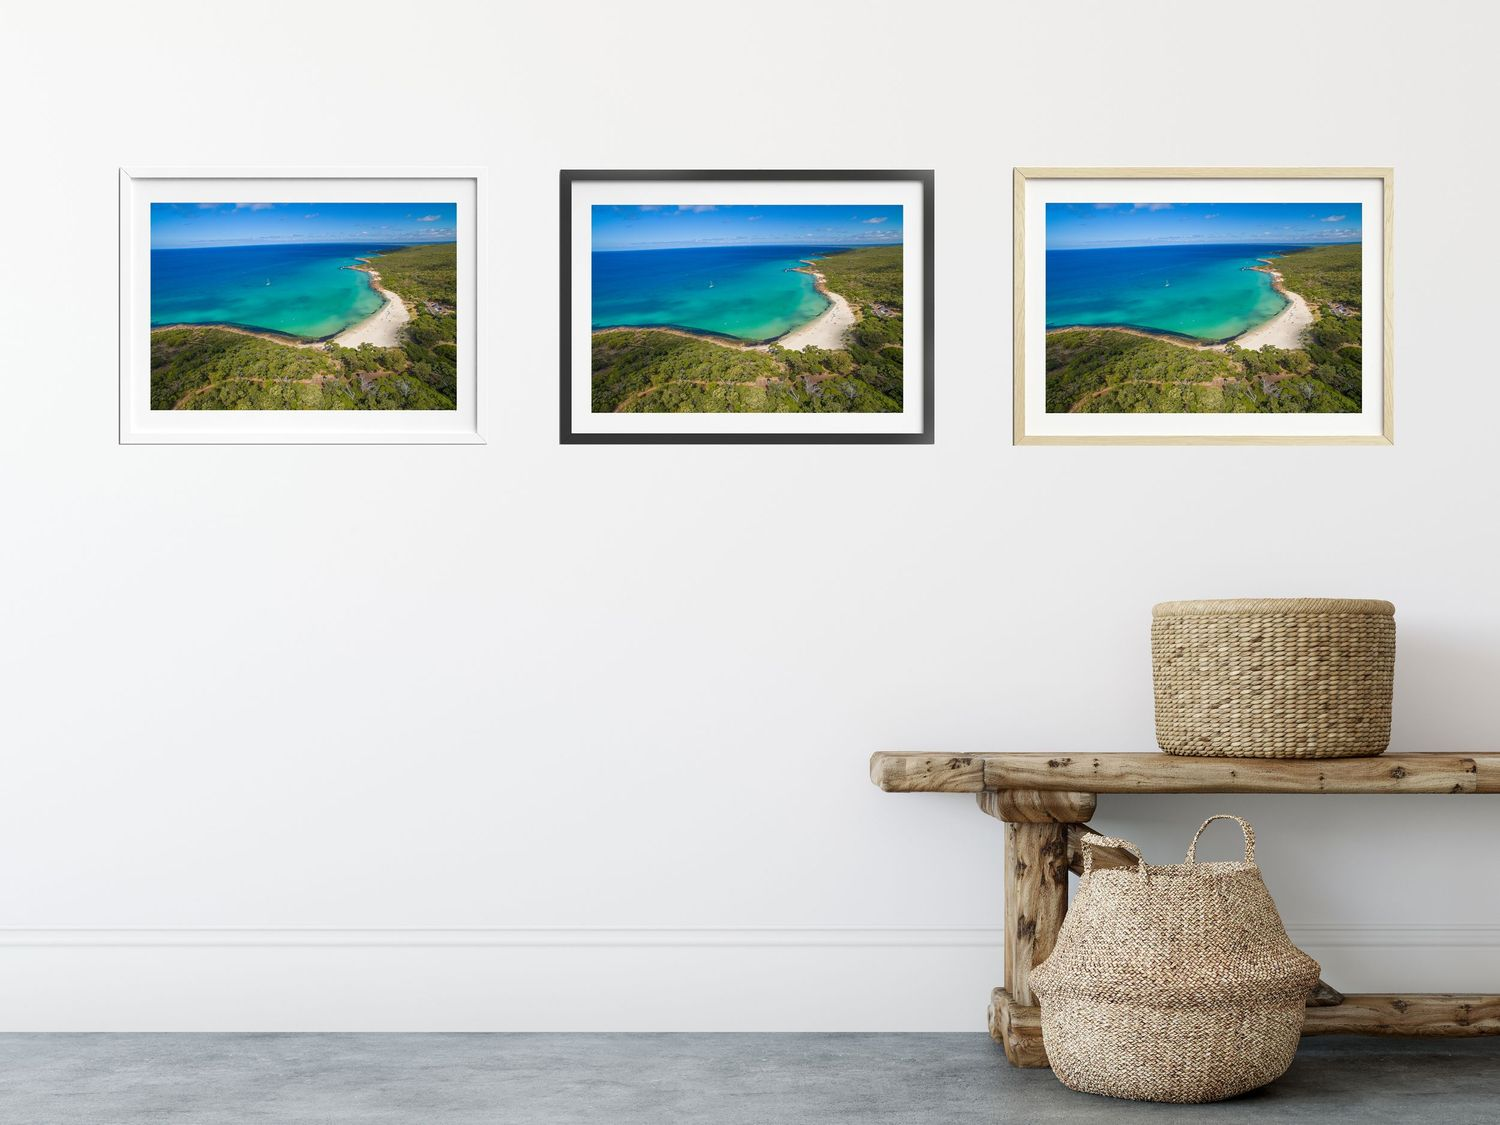 Freestyle Aerials Framed Prints on Wall